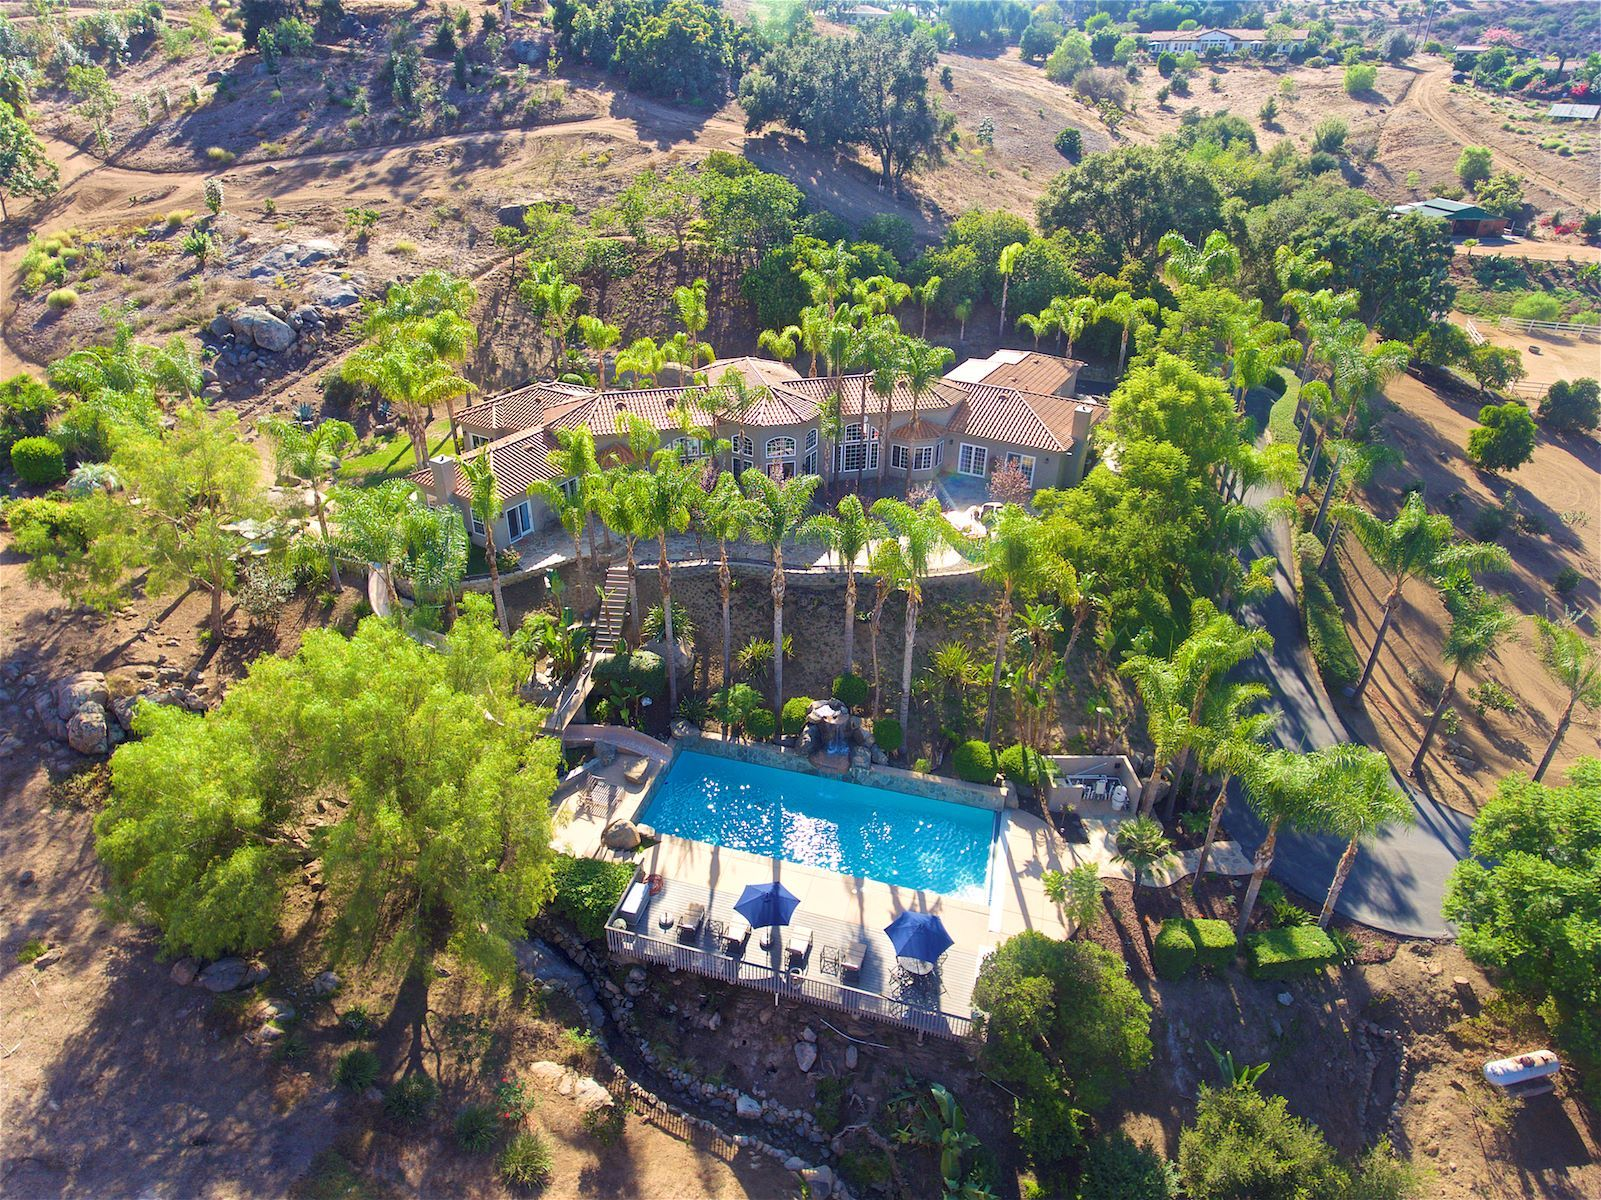 Spread across 20 acres the home boasts its own irrigated wine slopes